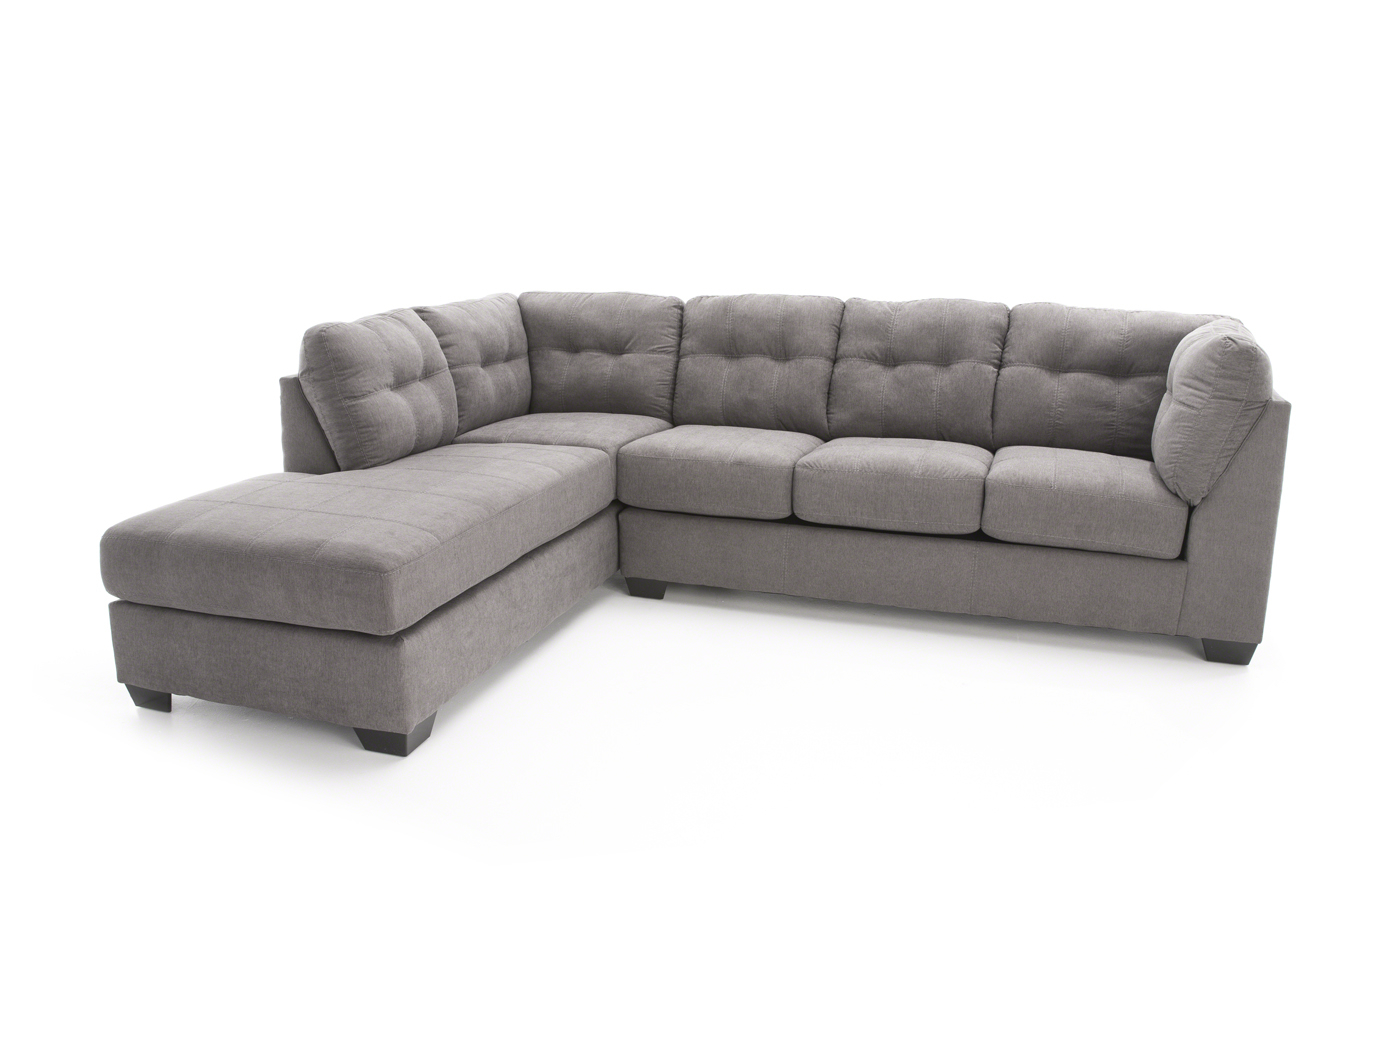 Steinhafels Regarding 2018 Allie Dark Grey Sofa Chairs (View 16 of 20)